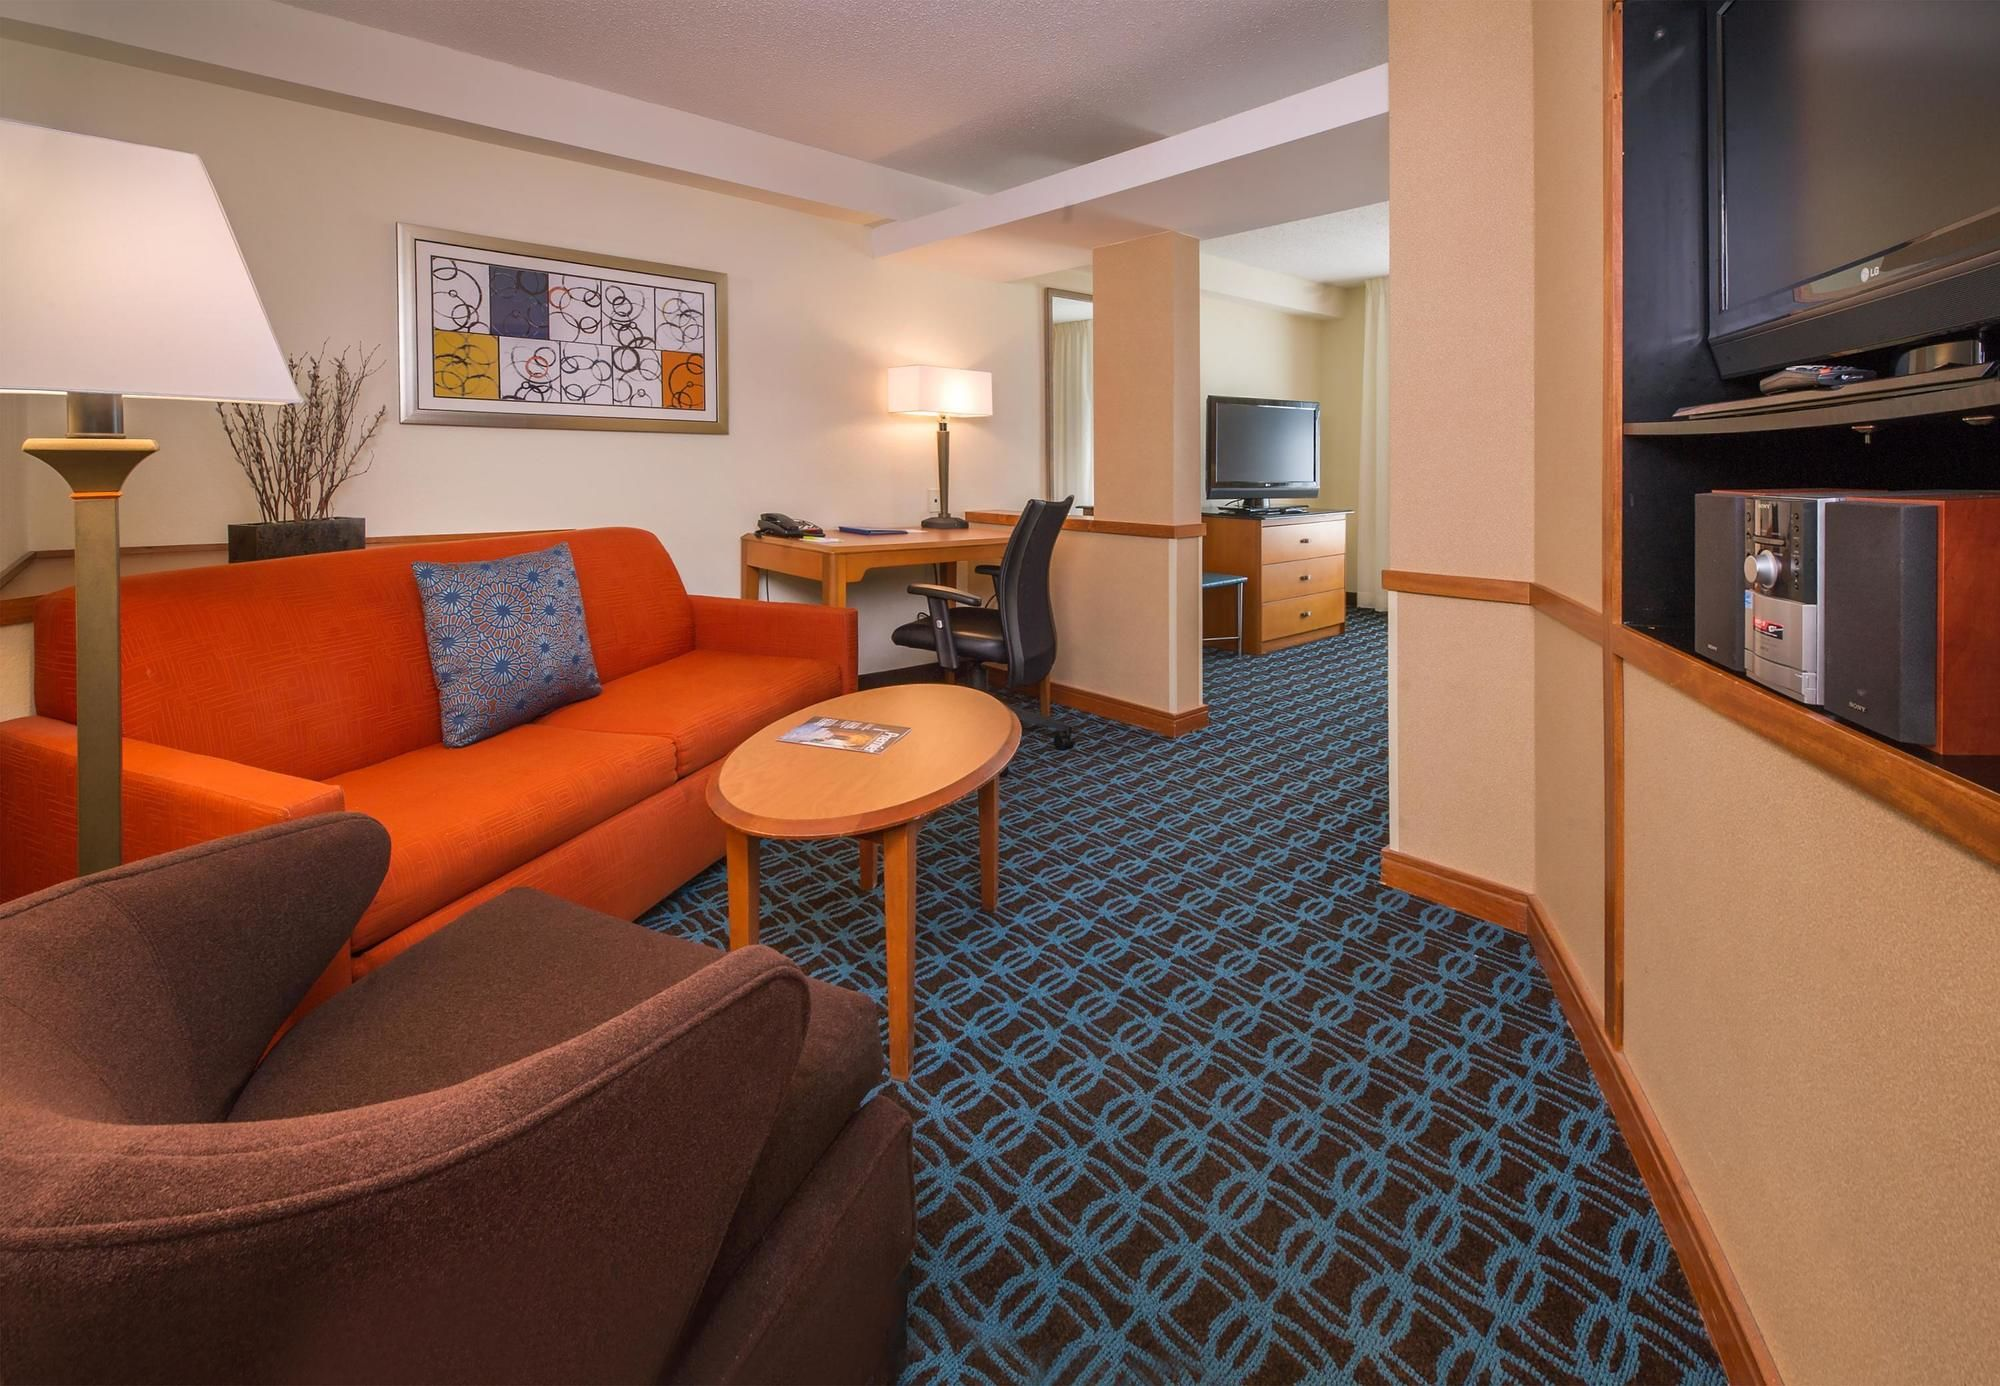 Fairfield Inn & Suites in Wilson, NC